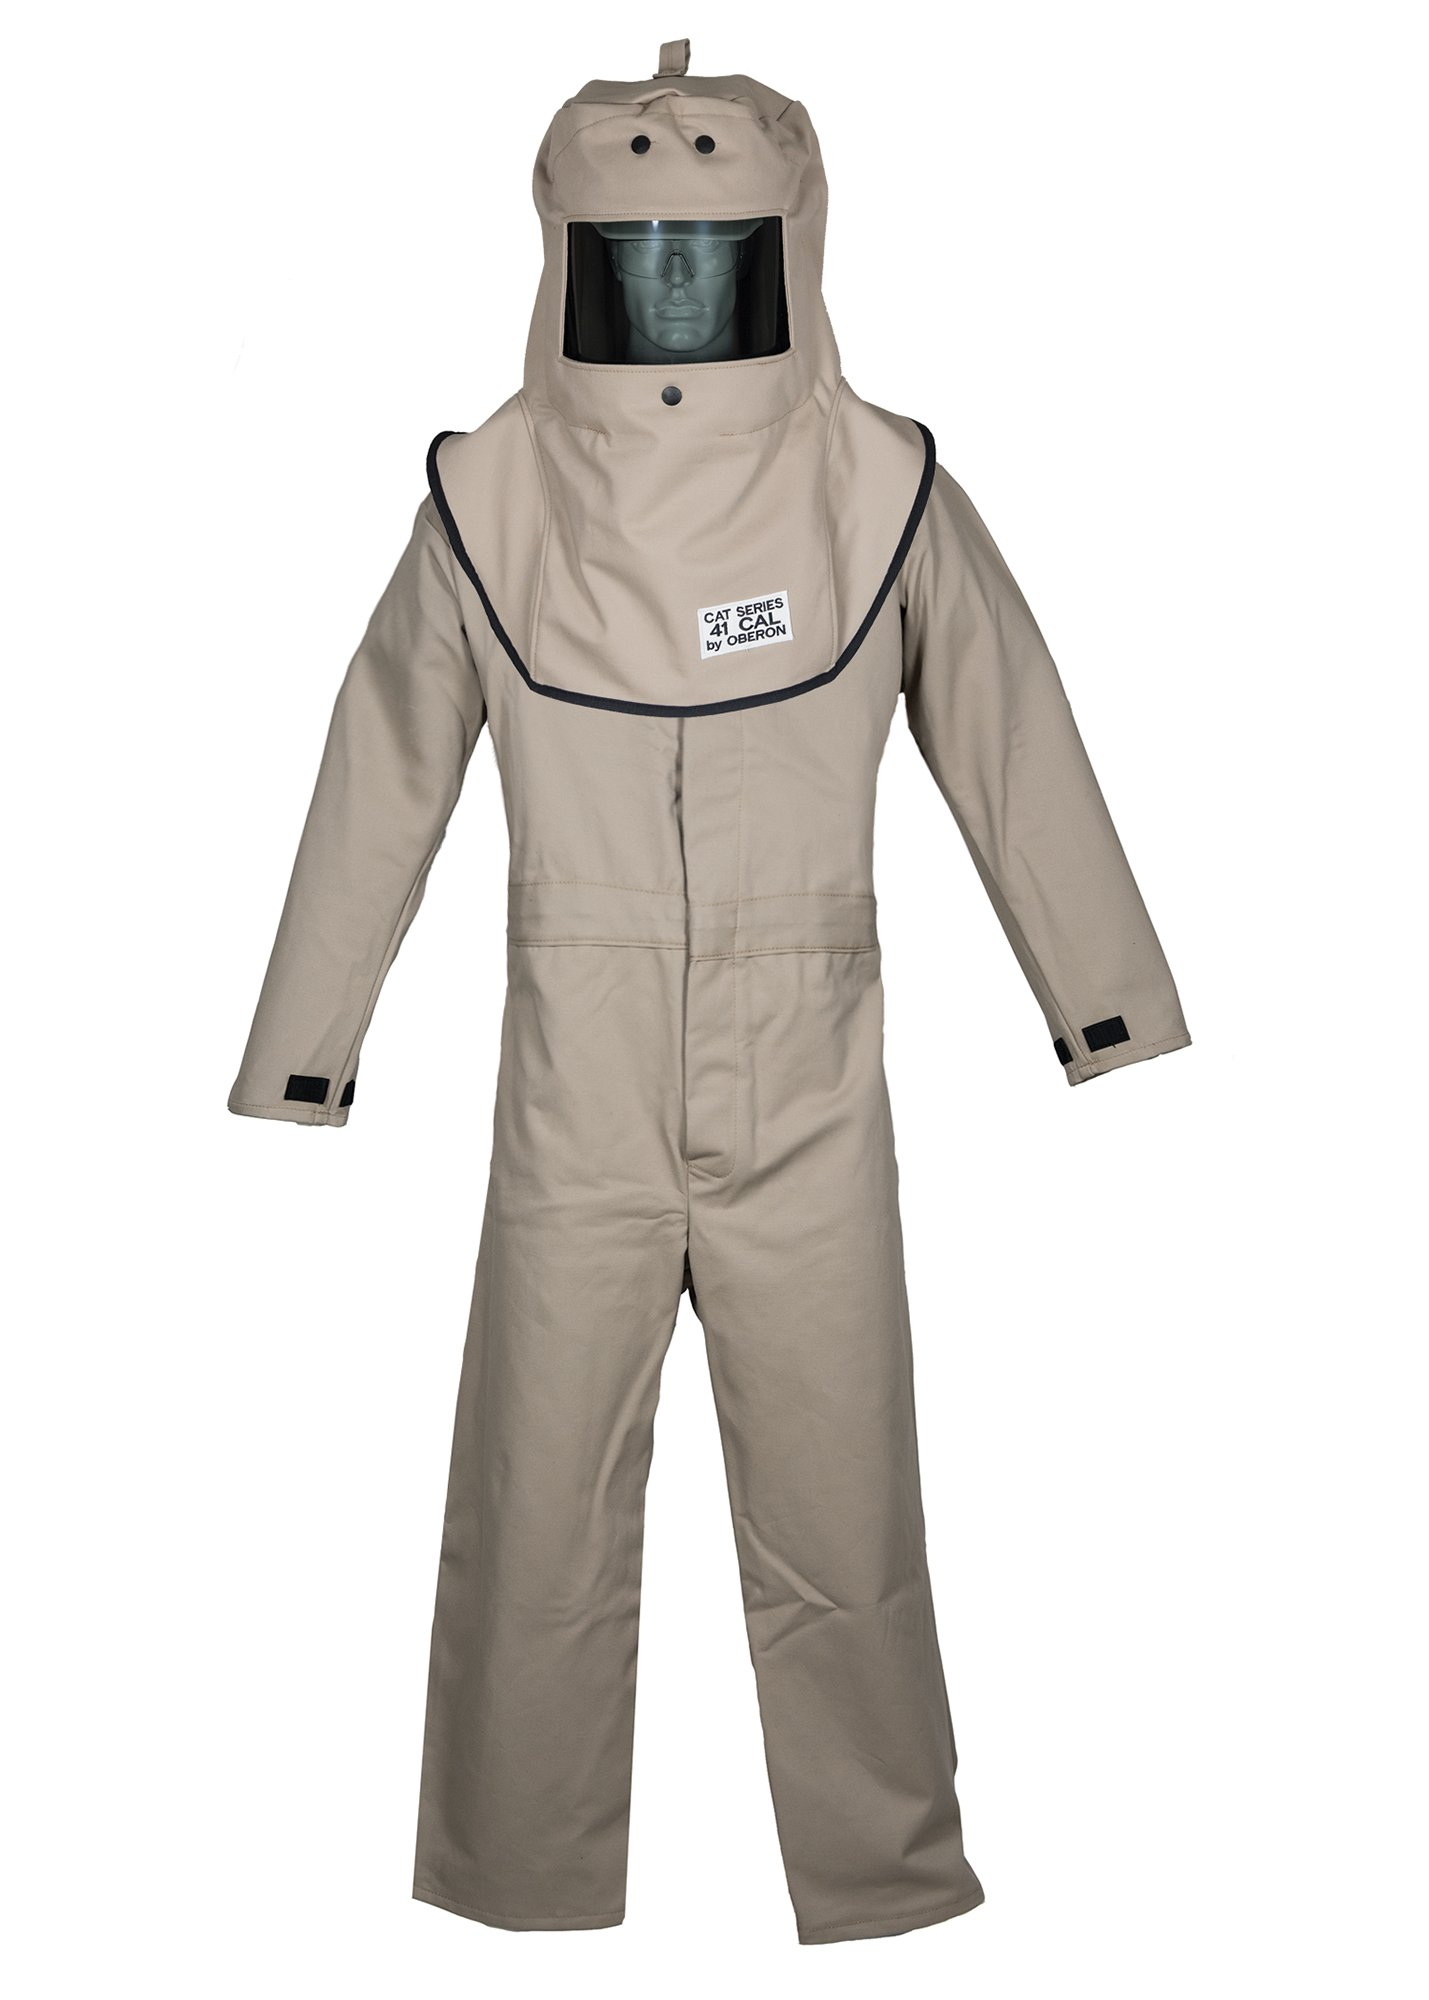 CAT4 Series Arc Flash Hood & Coverall Suit Set by Oberon Company (Image #1)